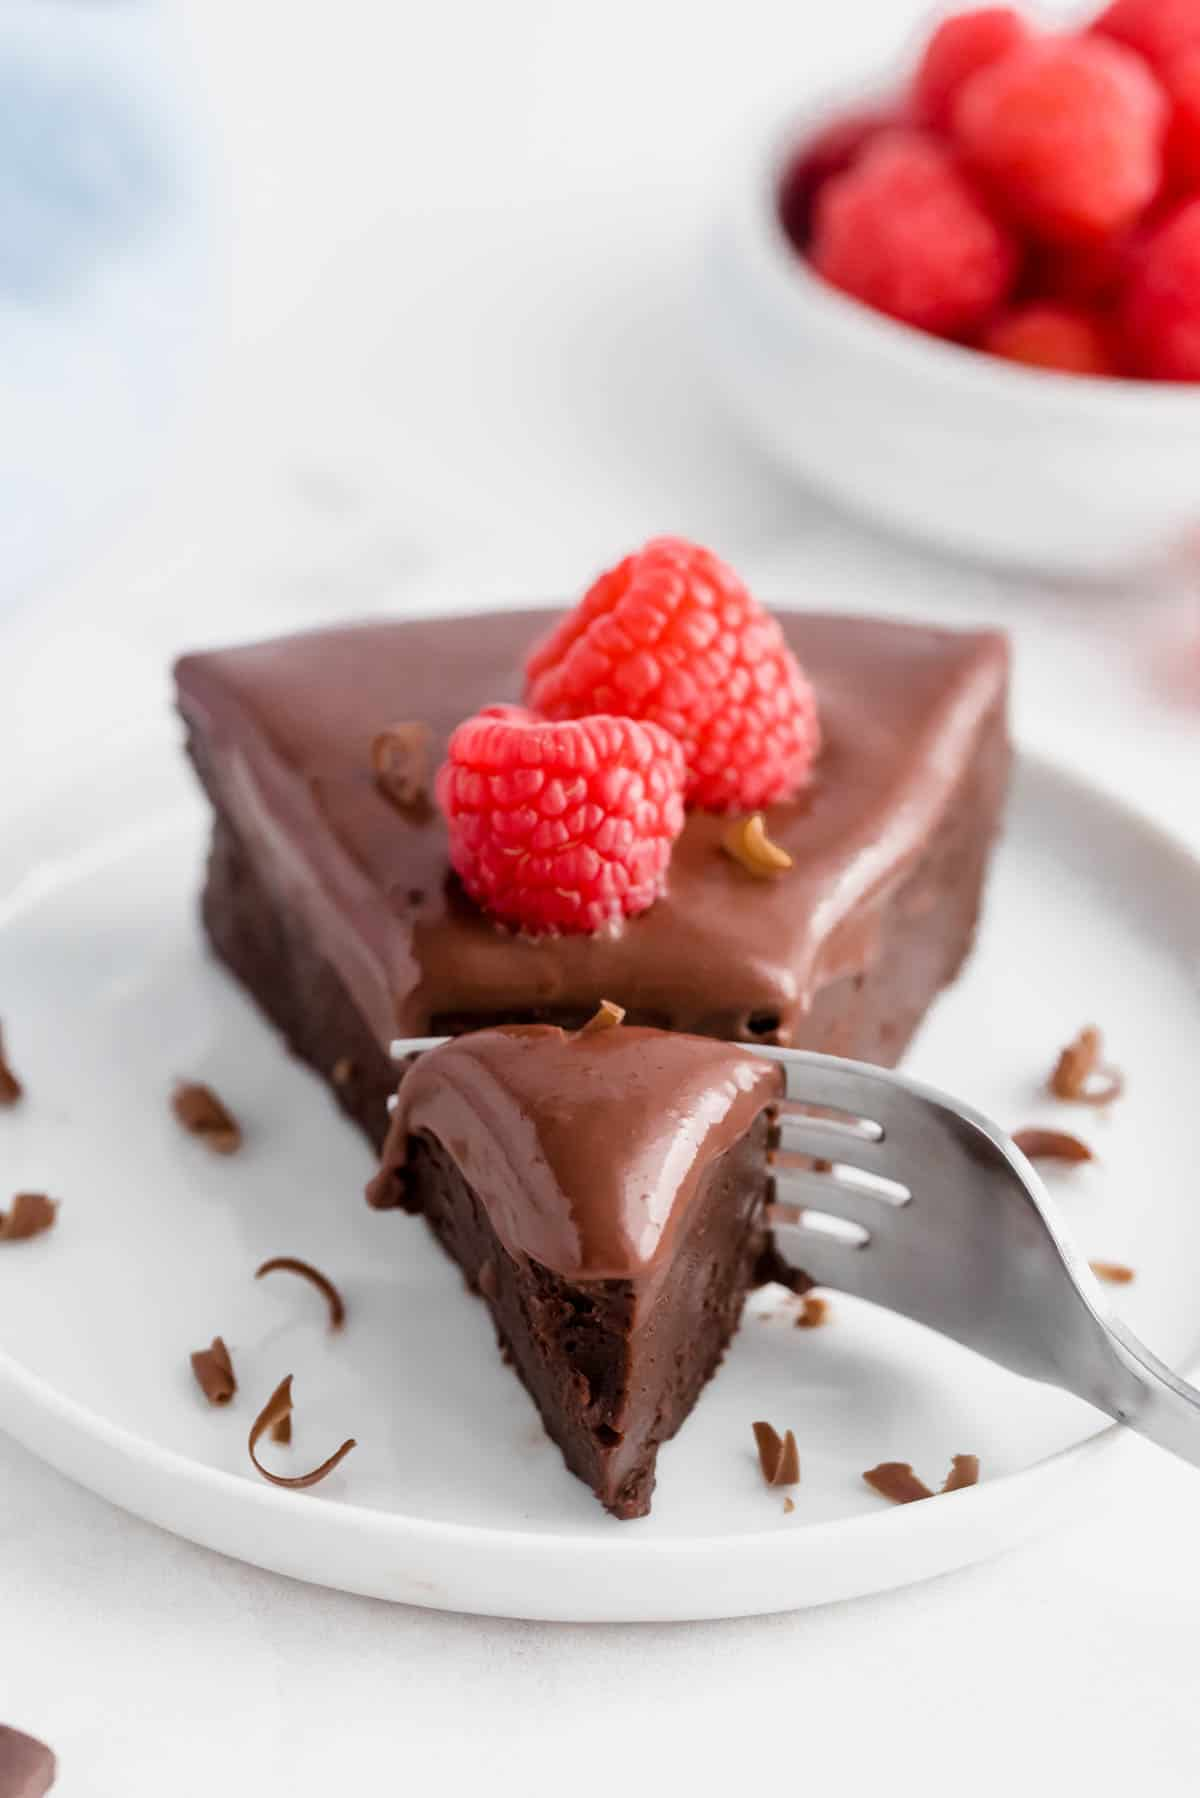 a fork taking a bite out of a slice of flourless chocolate cake